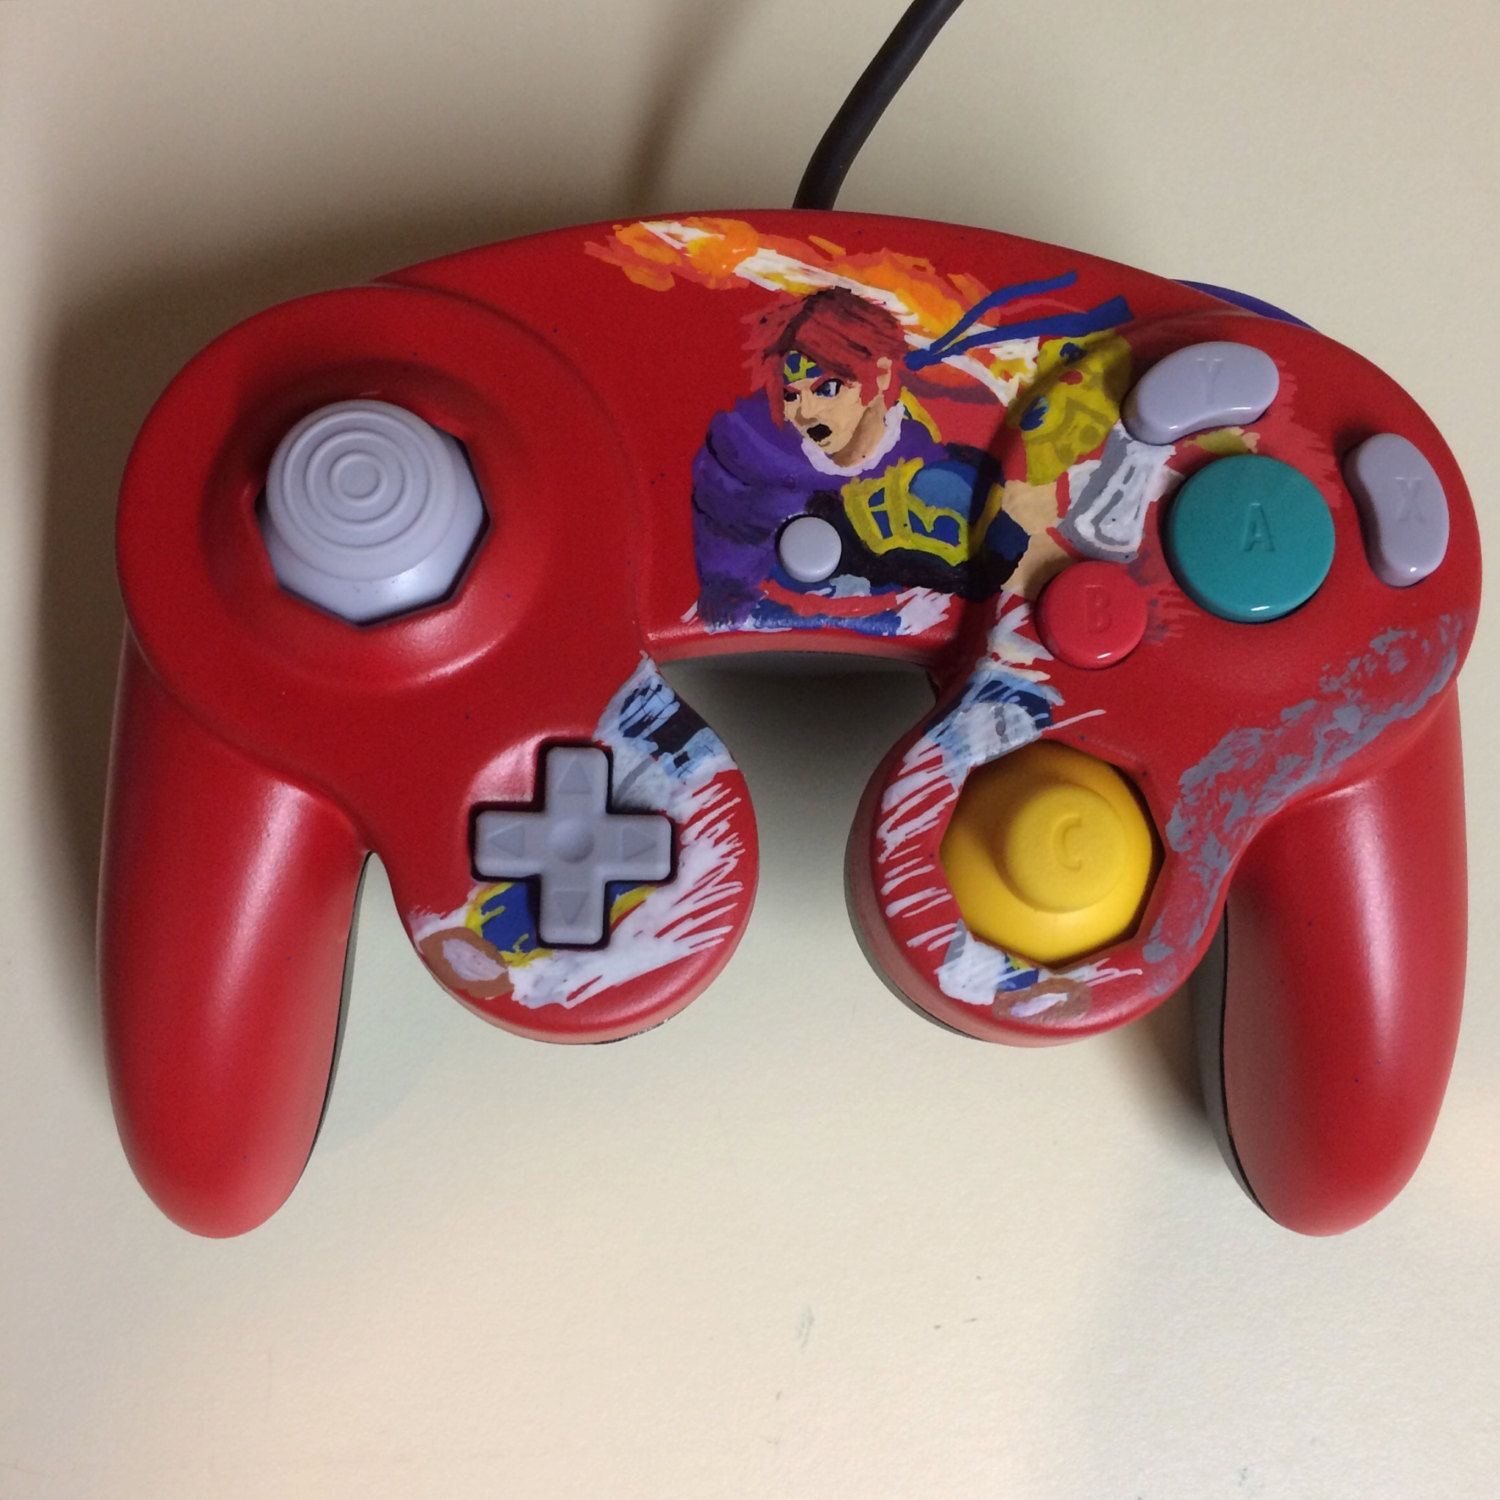 GameCube Made to Order Hand-Painted Custom Controller